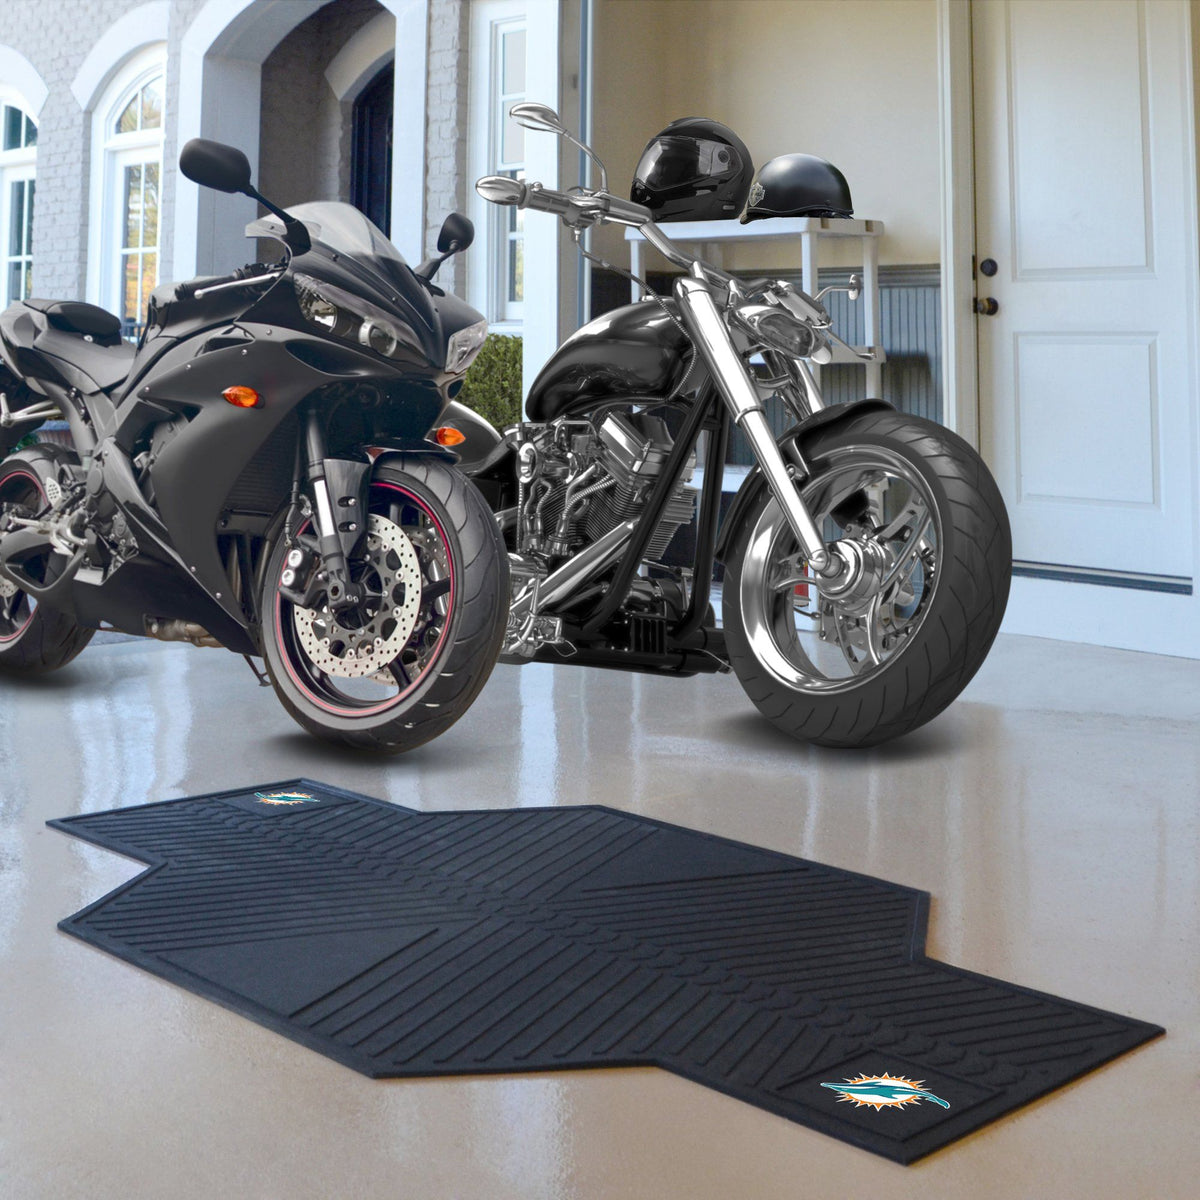 "NFL - Motorcycle Mat, 82.5"" x 42"" NFL Mats, Motorcycle Accessory, Motorcycle Mat, NFL, Auto Fan Mats Miami Dolphins"